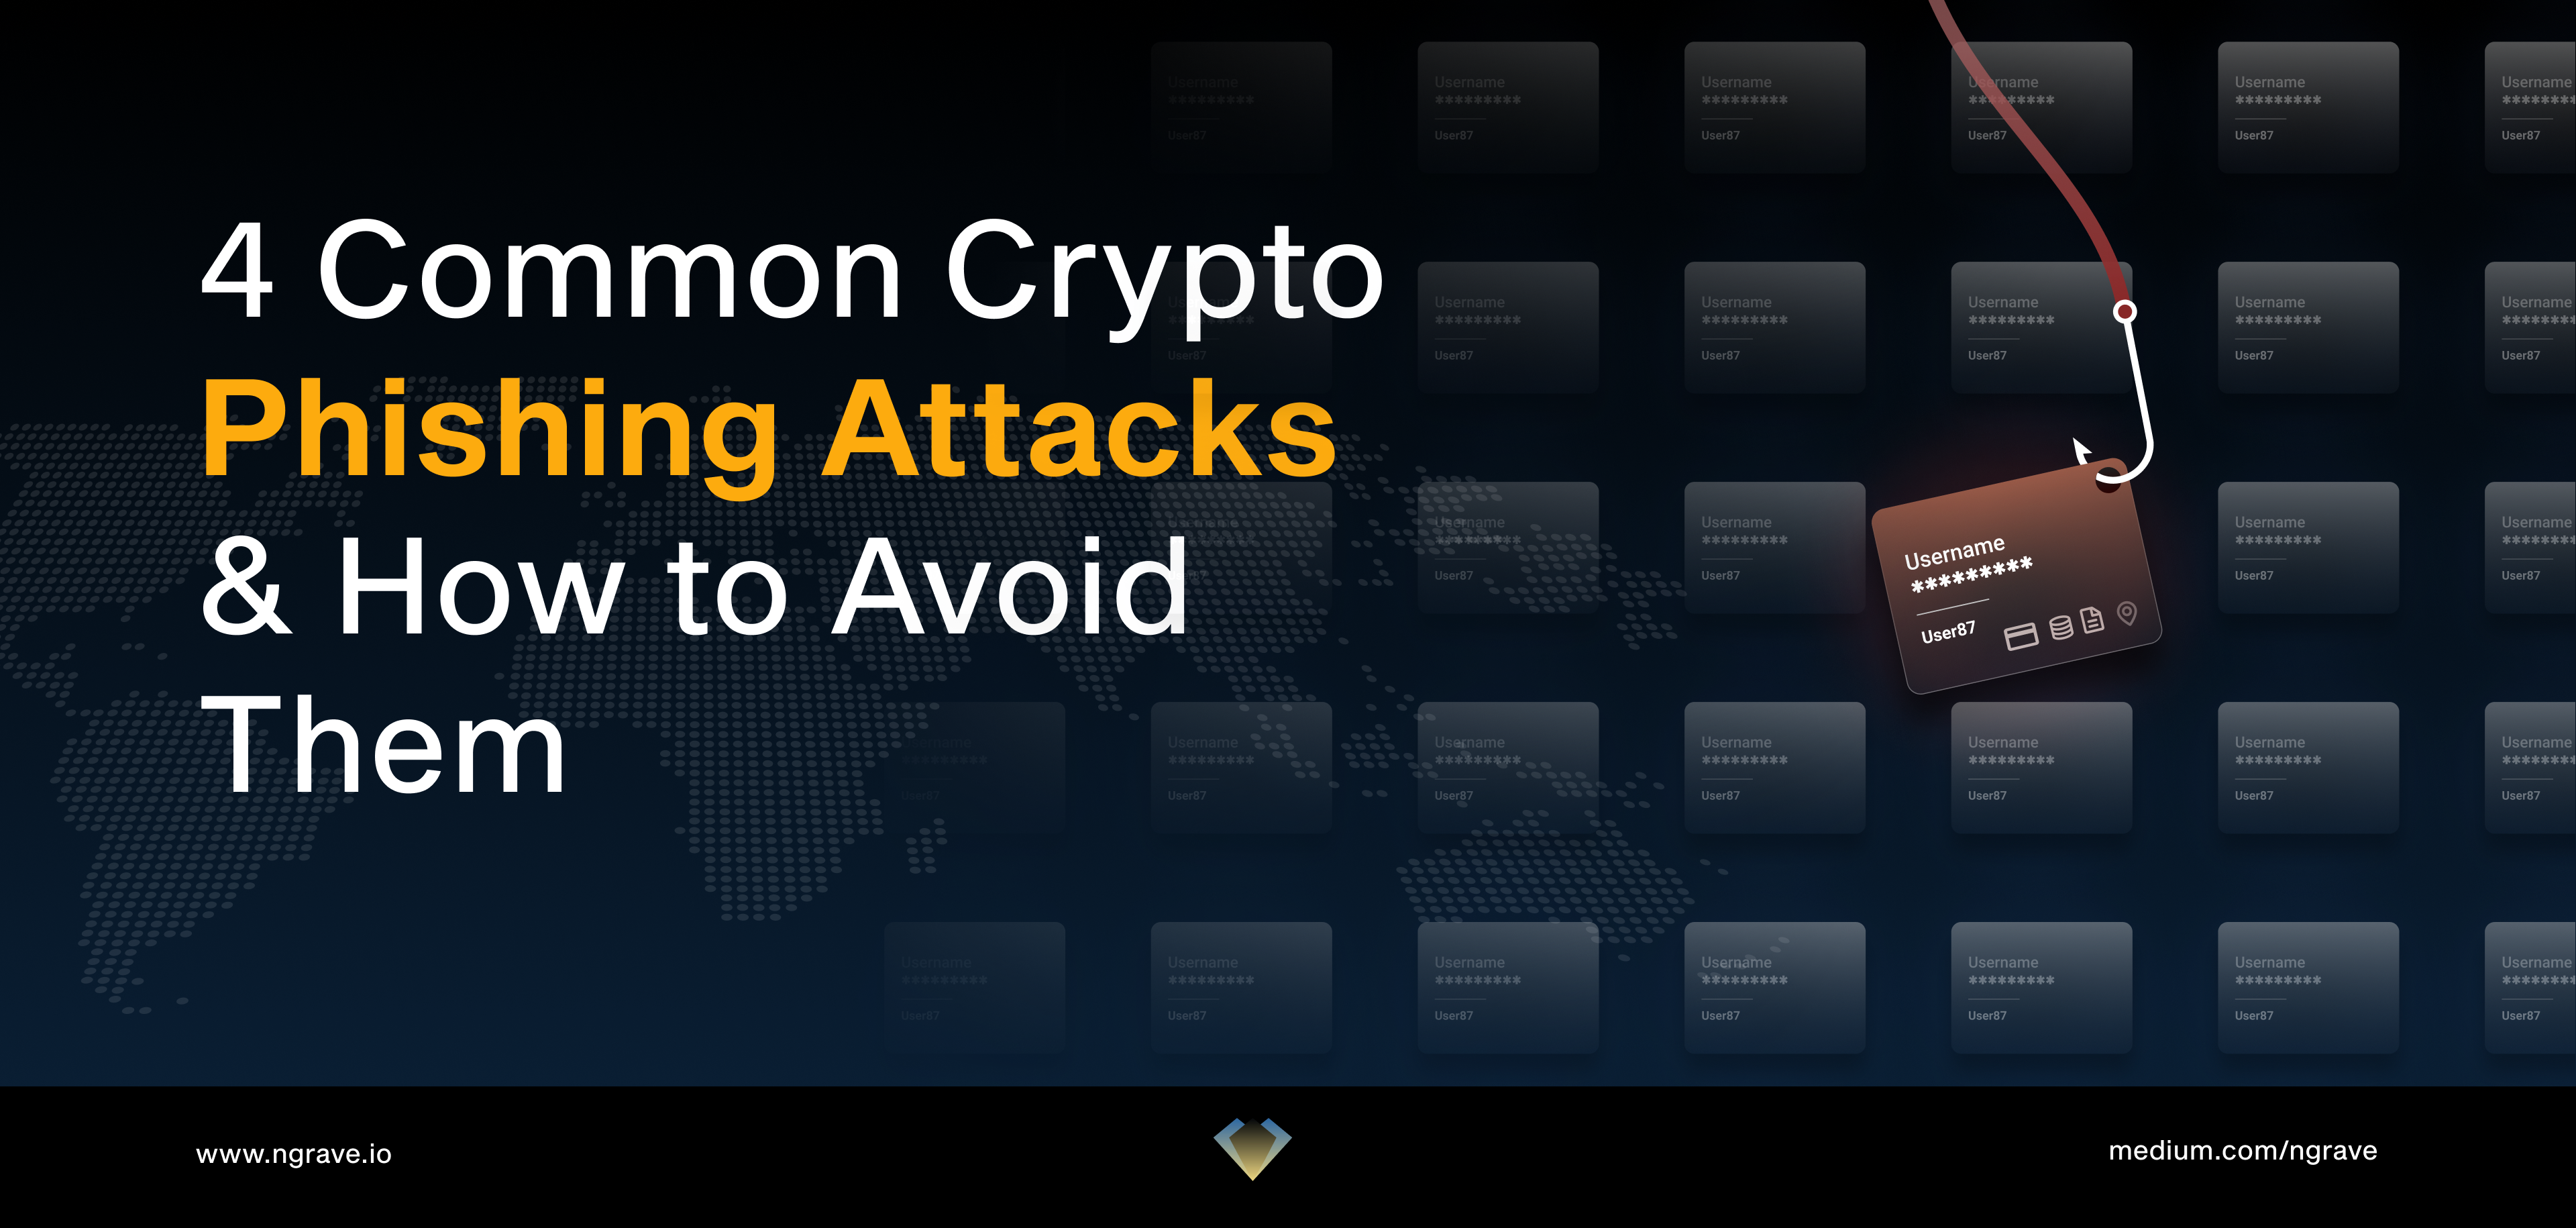 4 common crypto phishing attacks and how to avoid them: what are spear phishing, DNS hacking, phishing bots, and fake browser extensions, and how can you avoid being a victim.